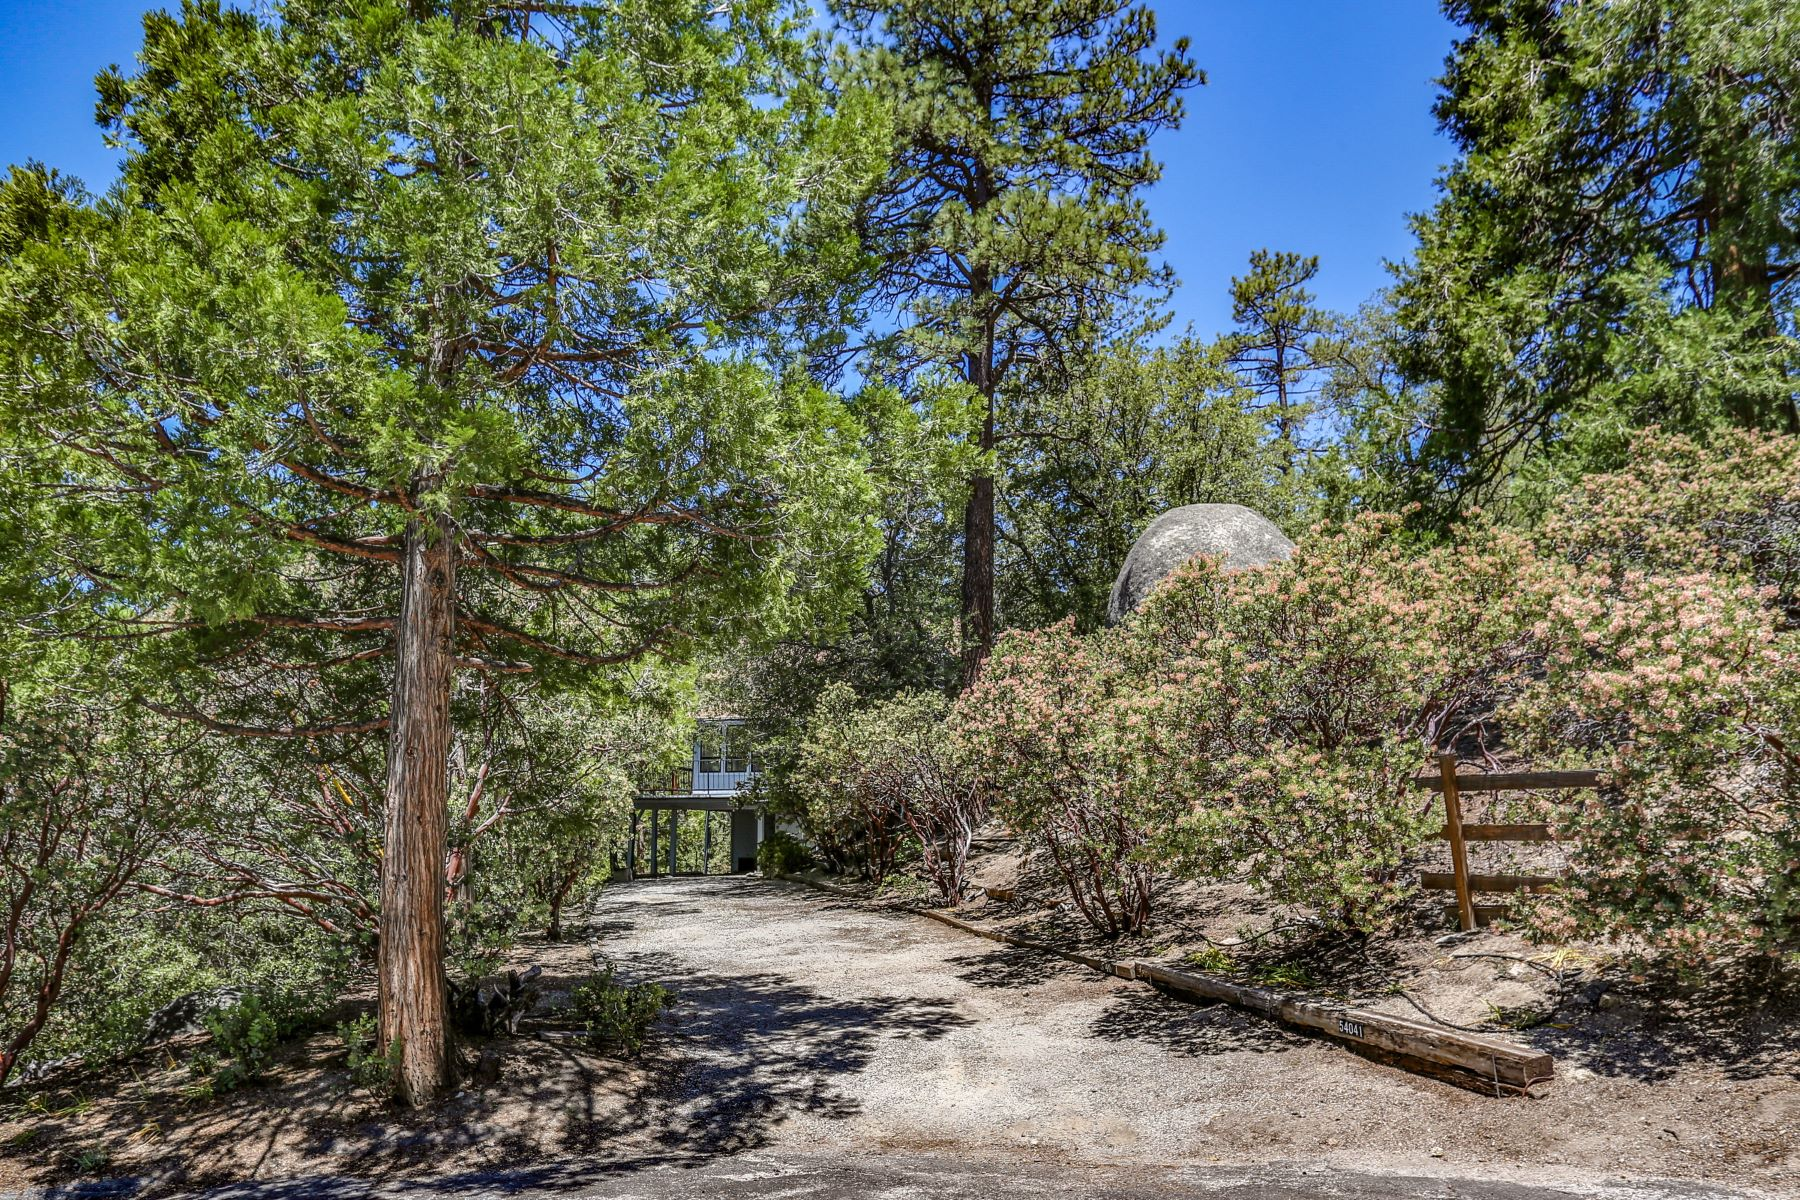 Single Family Homes for Sale at 54041 Northridge Dr Idyllwild, California 92549 United States